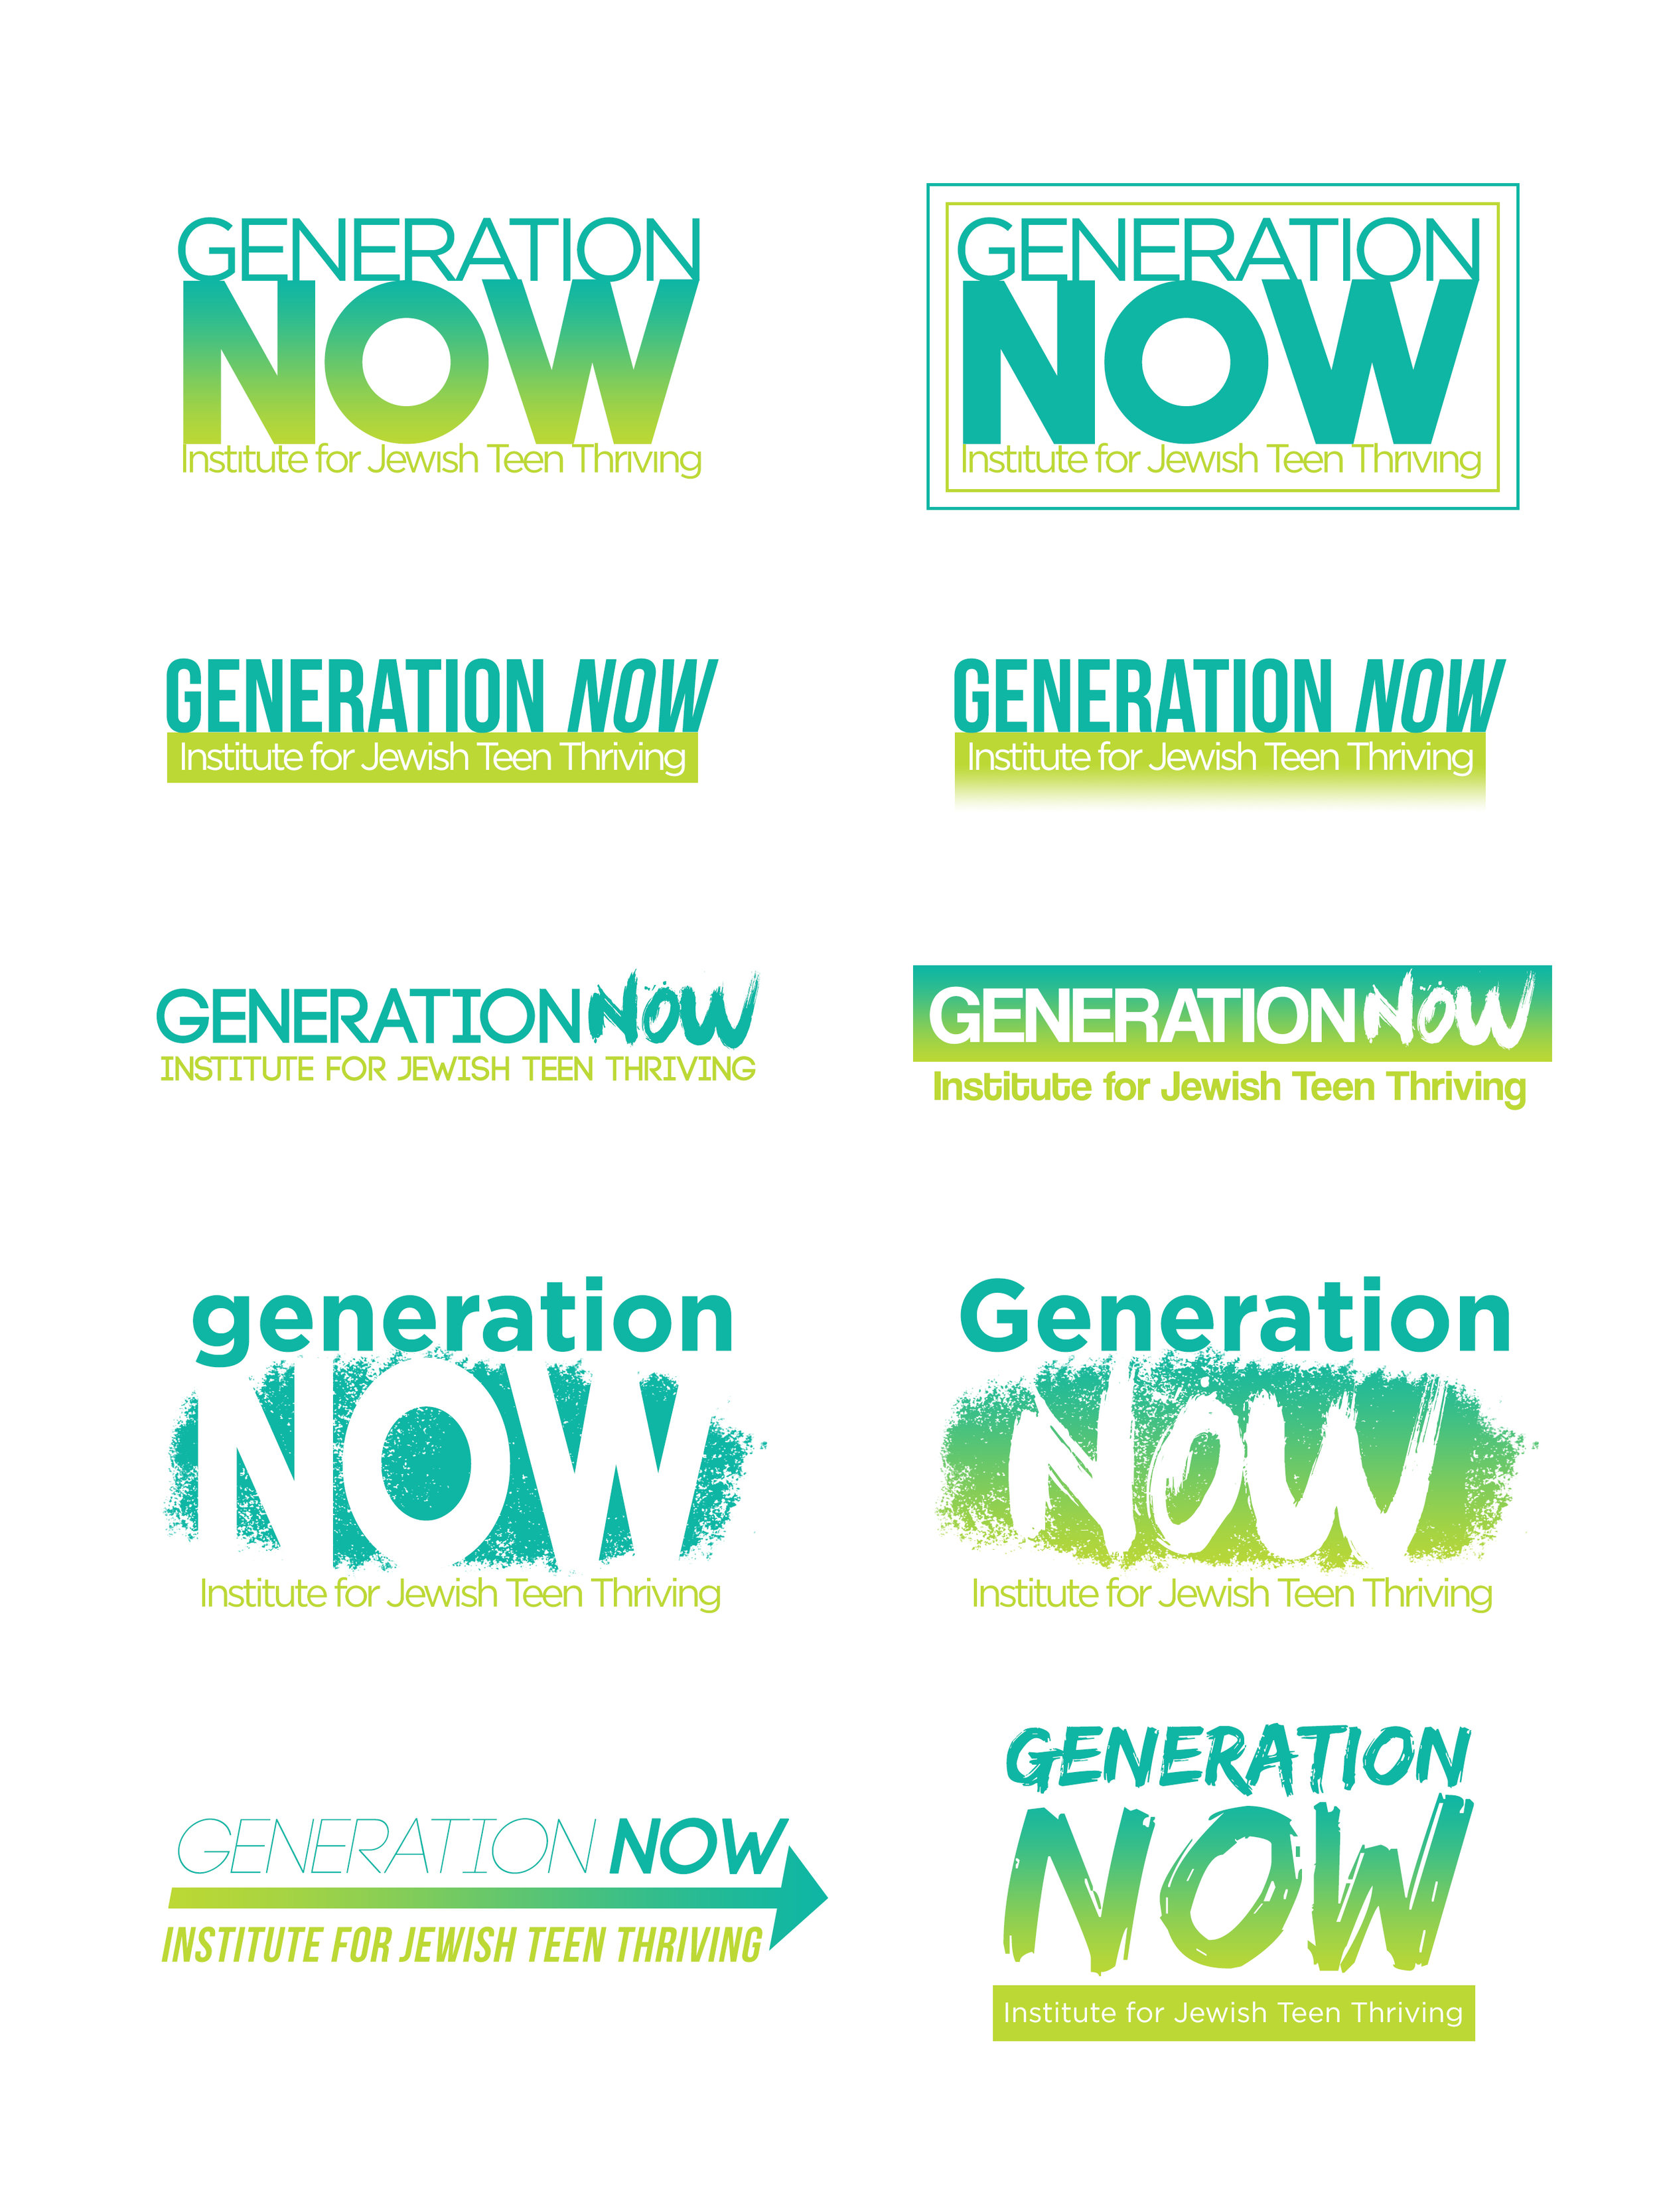 Generation Now Concepts.jpg